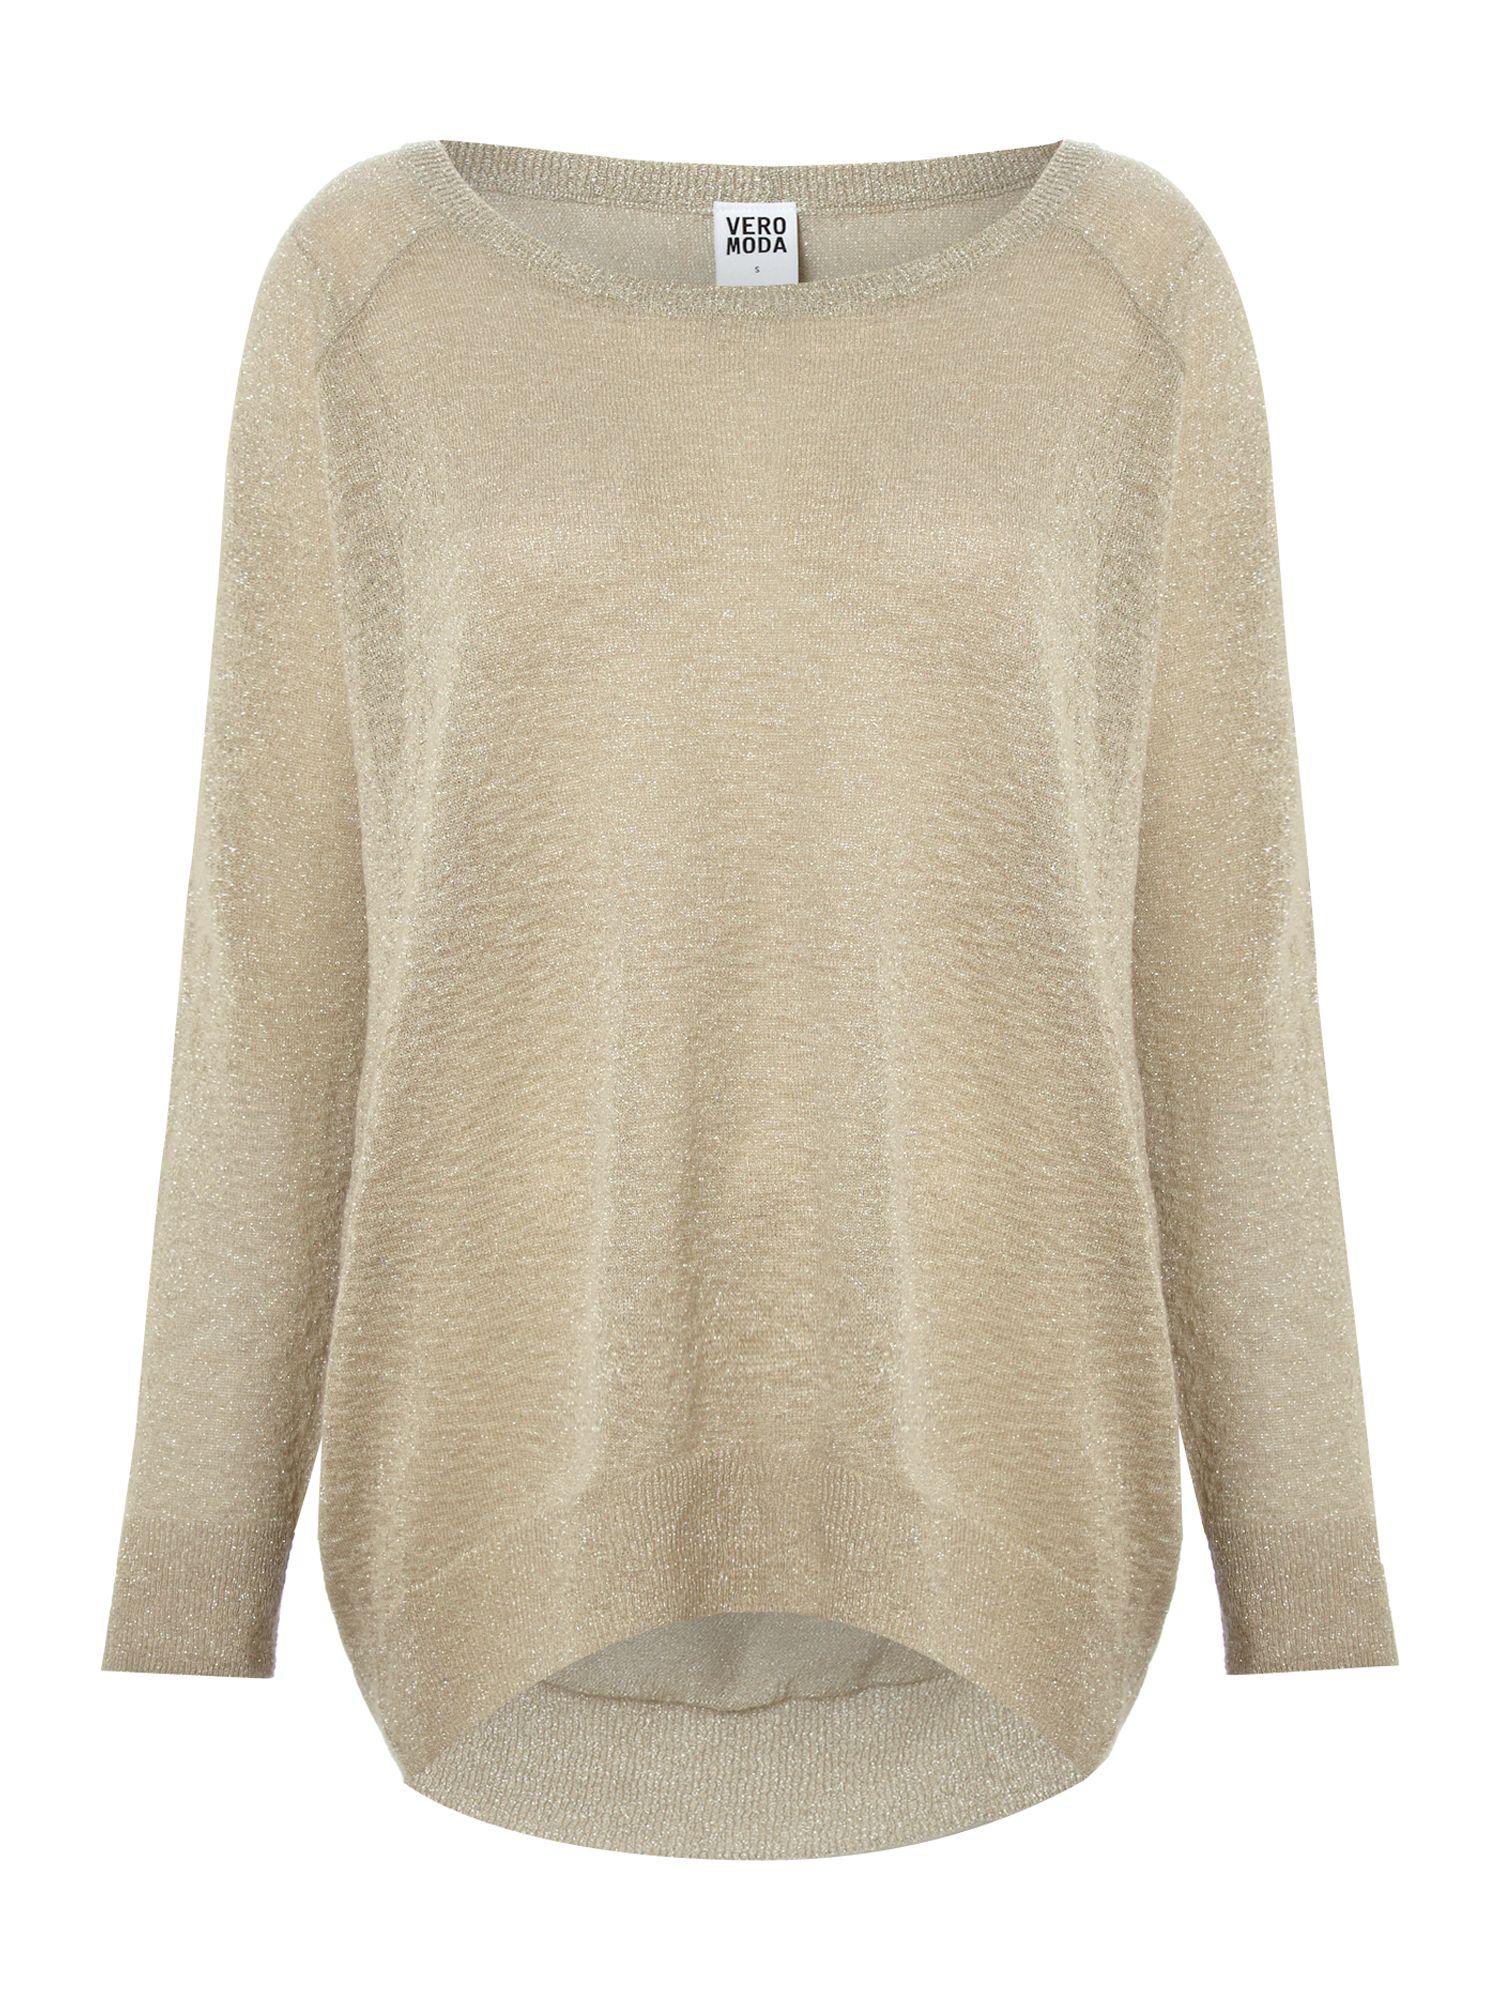 Metallic long sleeve knit